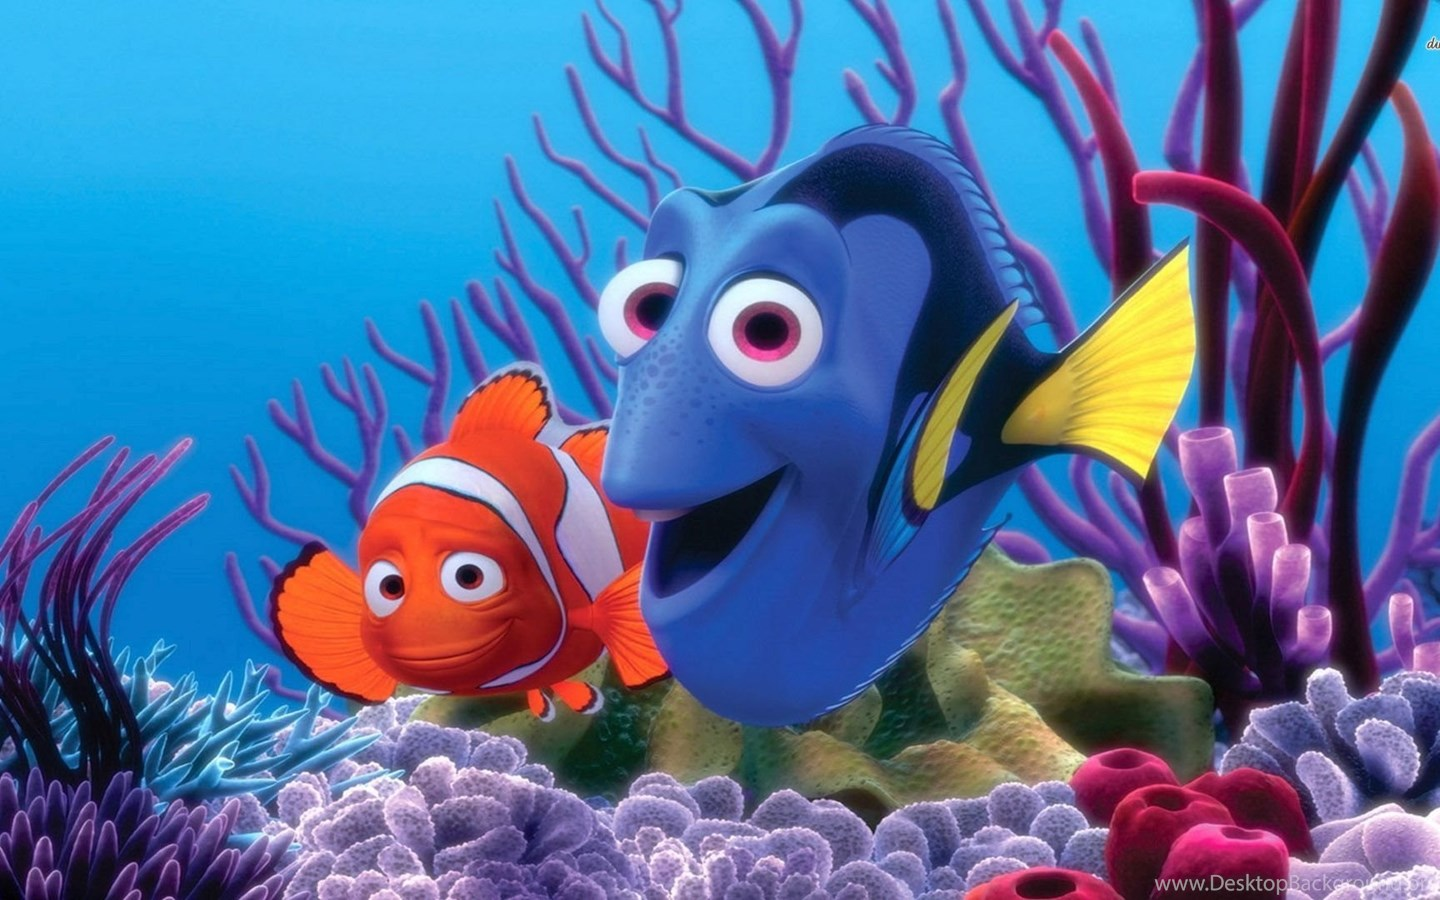 Games 99 Ipad Mini 2 Wallpapers Hd And Ipad Mini Wallpapers: Finding Nemo, Dory, Cartoons, 1920x1080 HD Wallpapers And